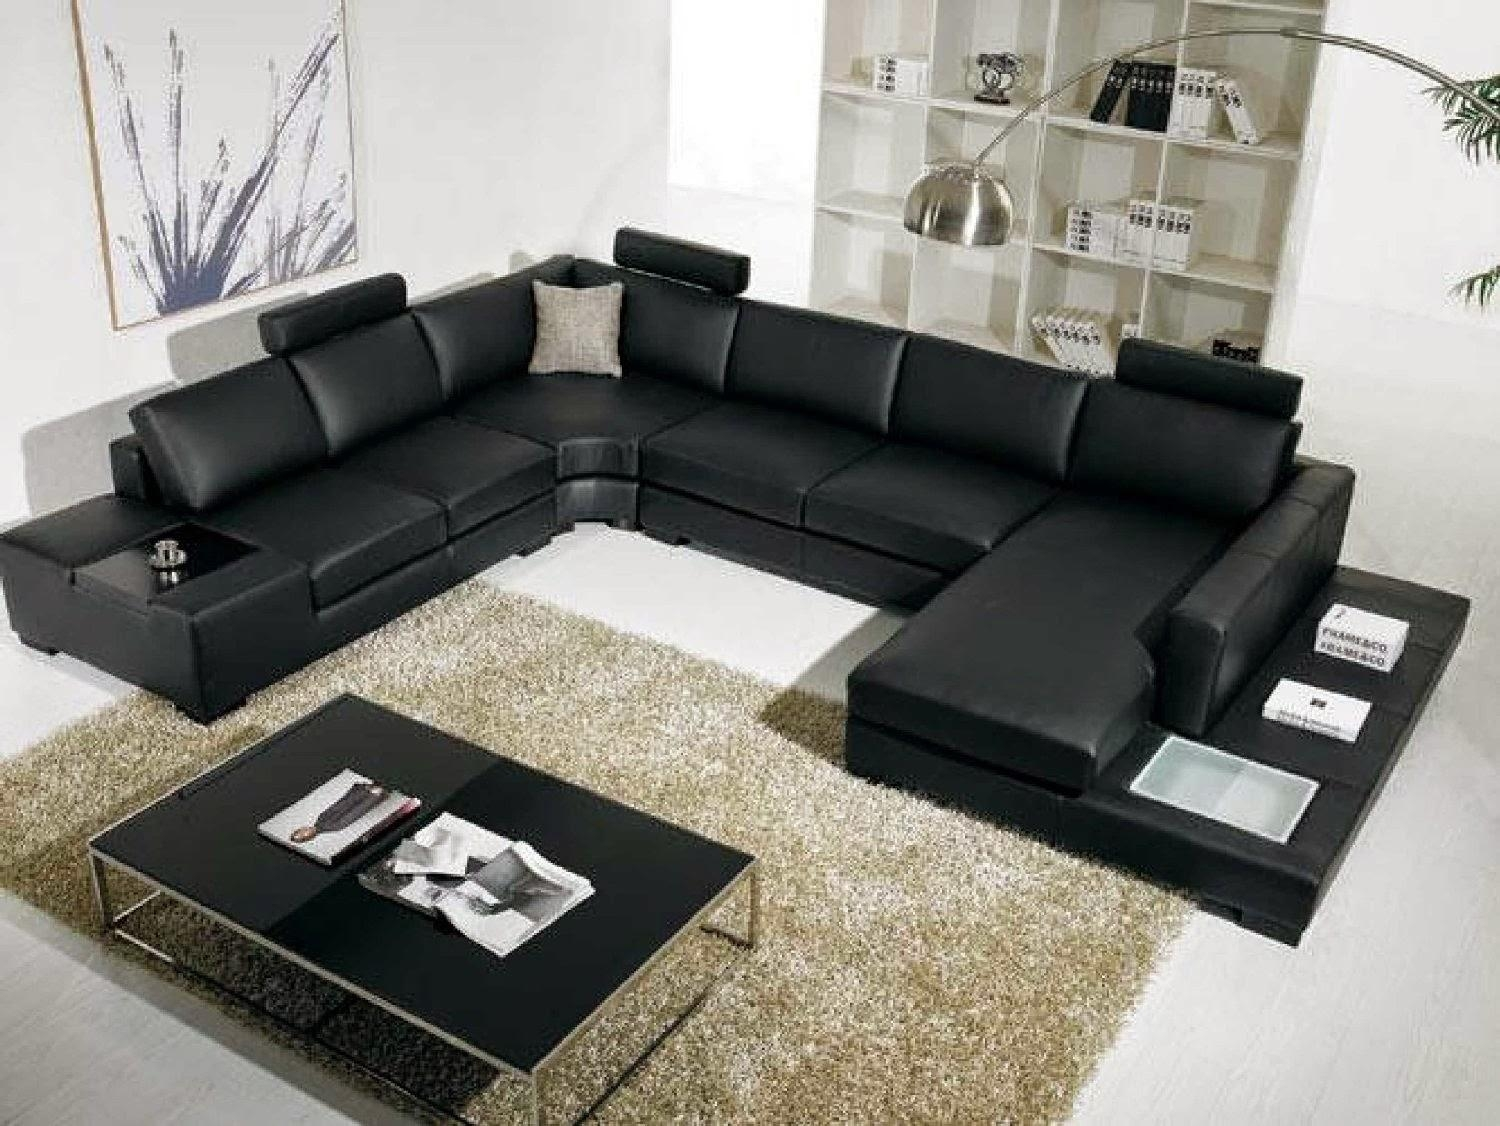 Elegant Leather Sectional Sofas On Sale 37 On Giant Sectional Sofa Throughout Giant Sofas (Image 7 of 20)